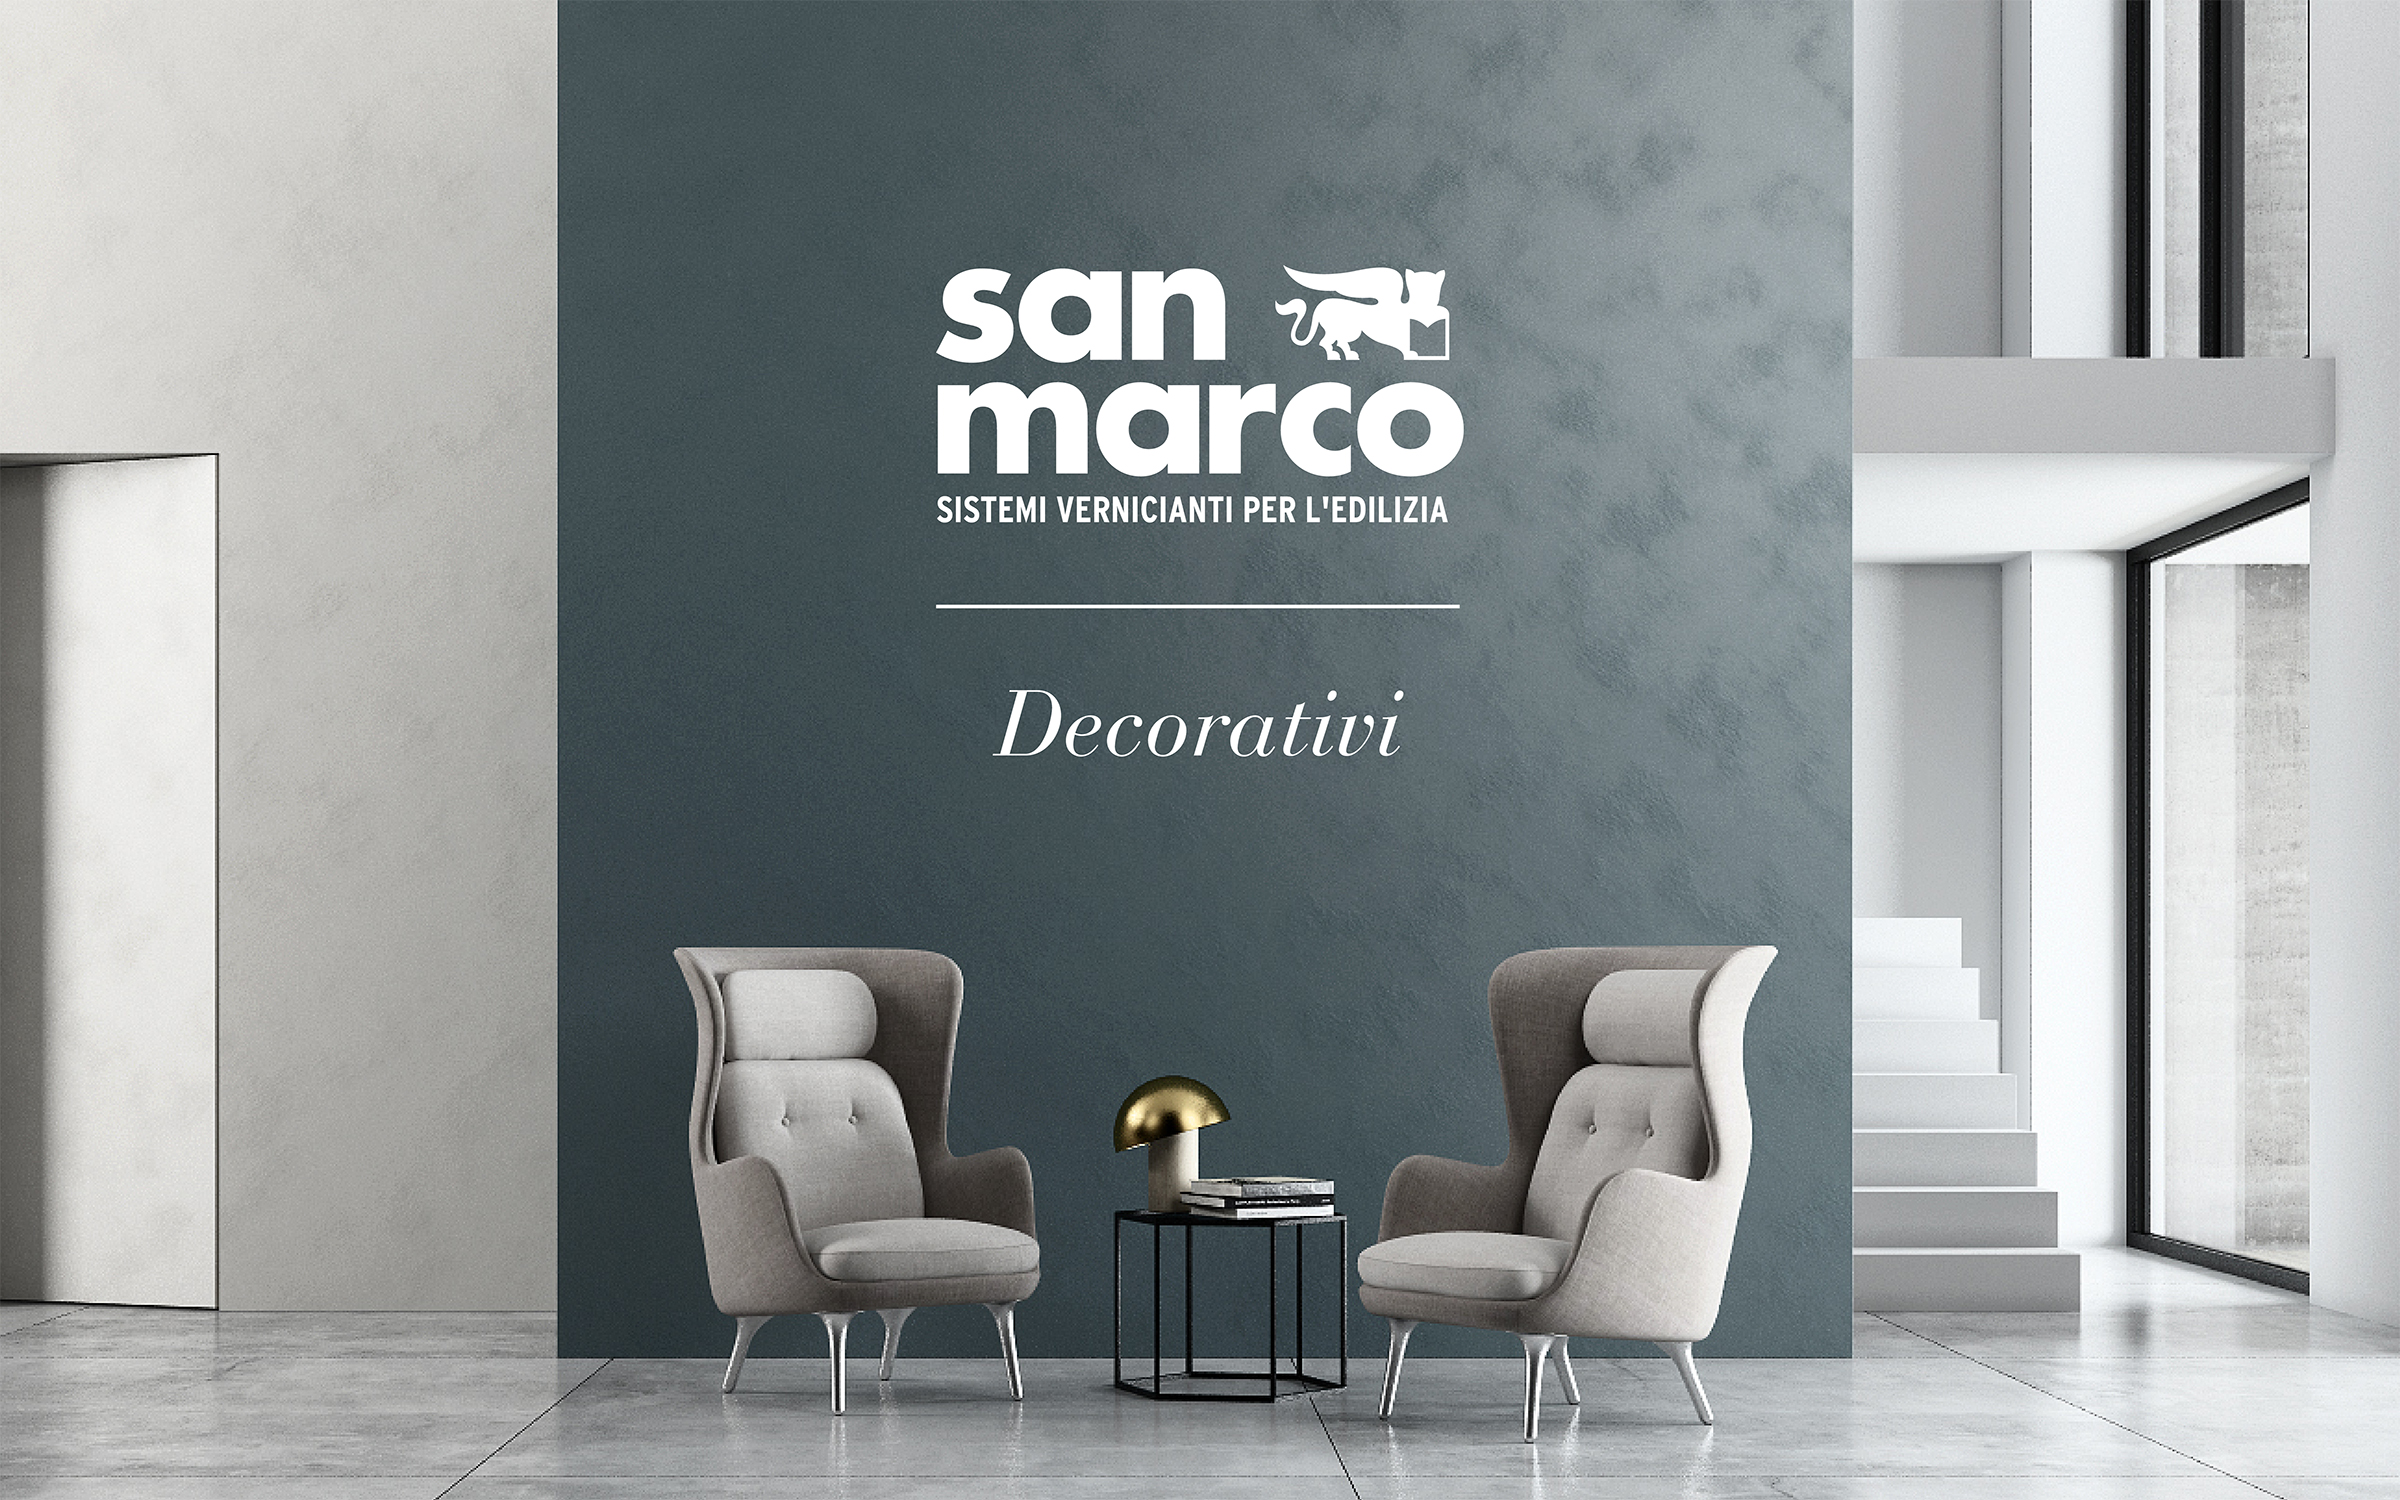 San Marco Decorativi: the architecture of colour